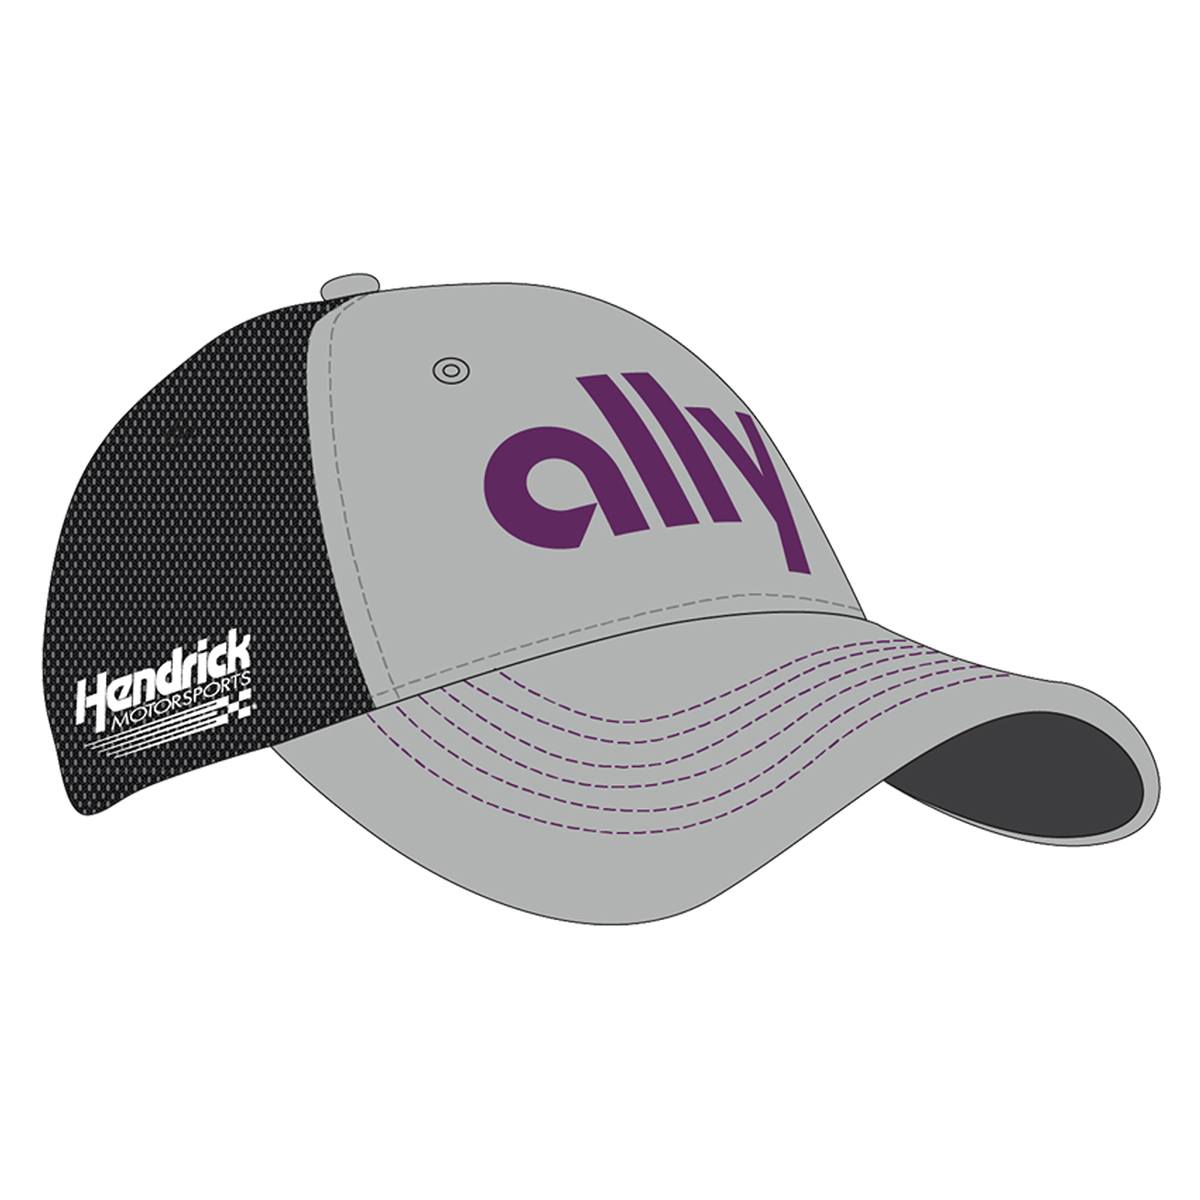 #48 NASCAR Jimmie Johnson Ally Hat